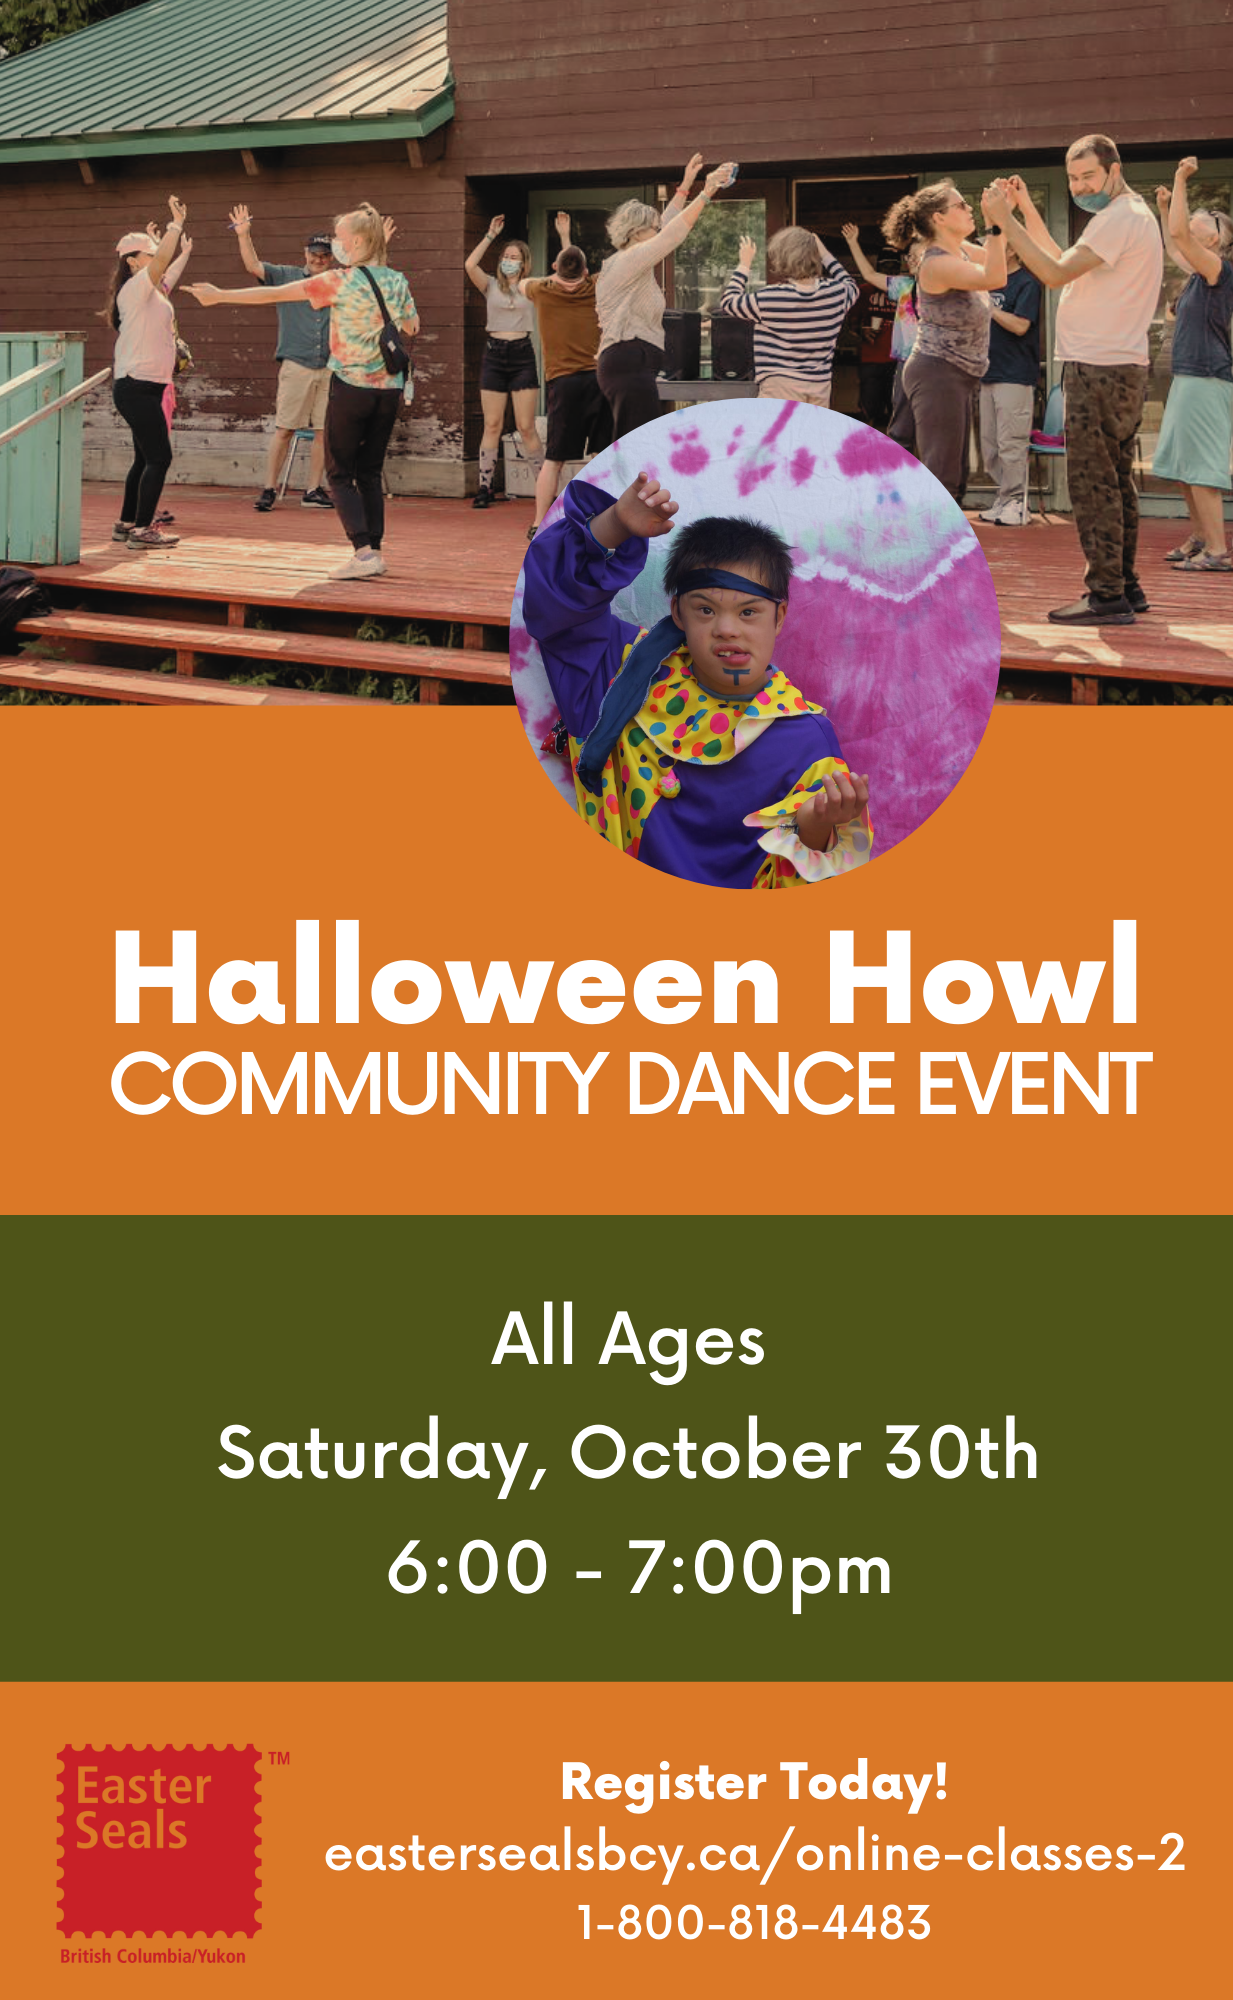 Halloween Howl Community Dance Event for All Ages